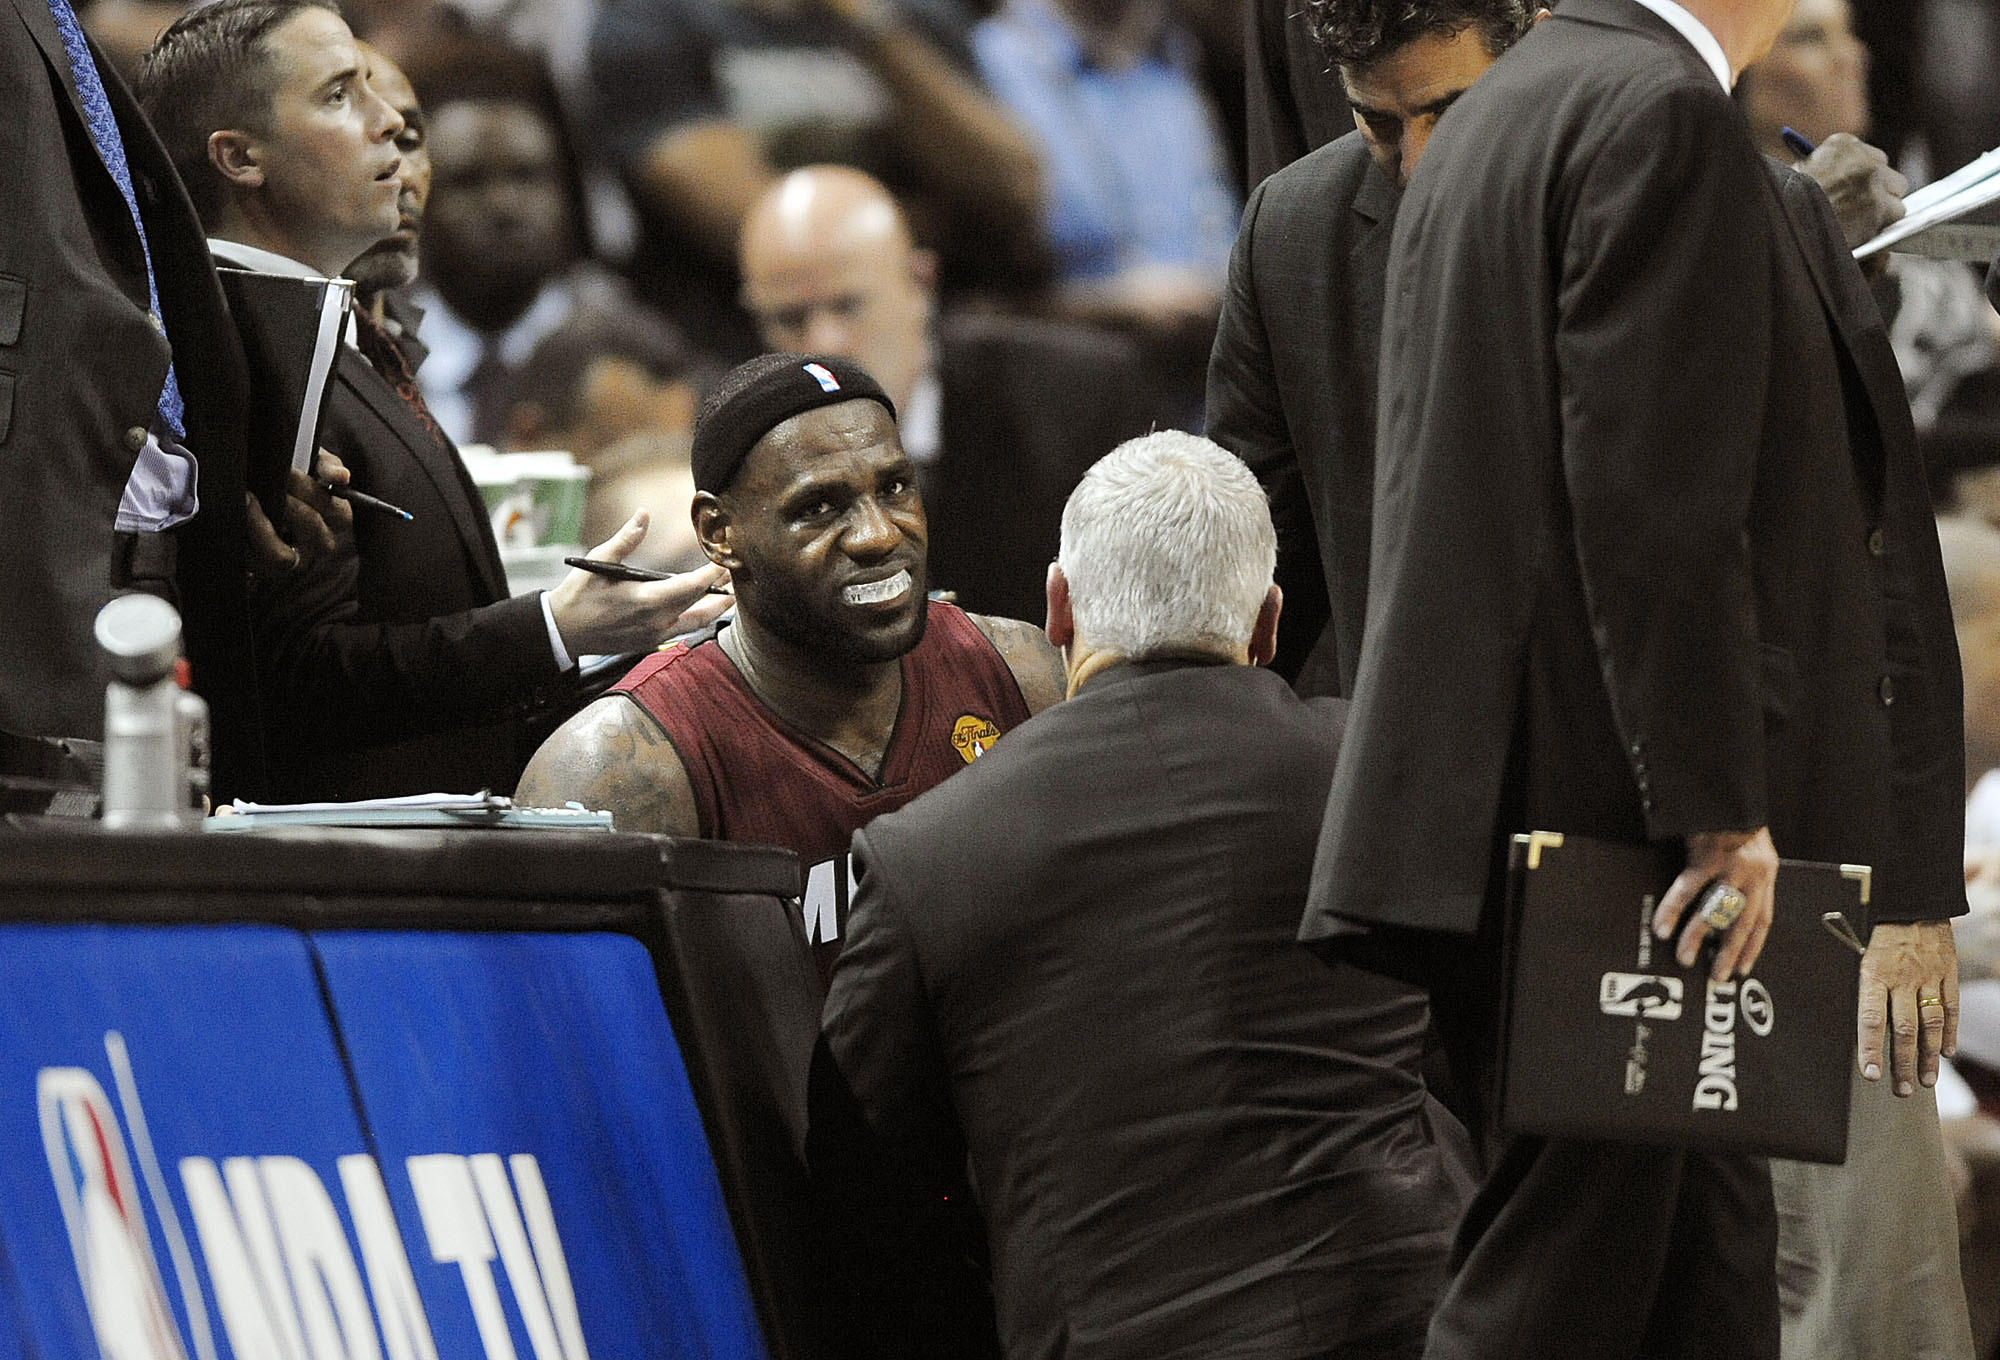 Miami Heat forward LeBron James is treated on the bench after hurting his leg during the second half of Game 1 of the NBA Finals against the San Antonio Spurs, Thursday, June 5, 2014 at AT&T Center. Michael Laughlin, South Florida Sun Sentinel